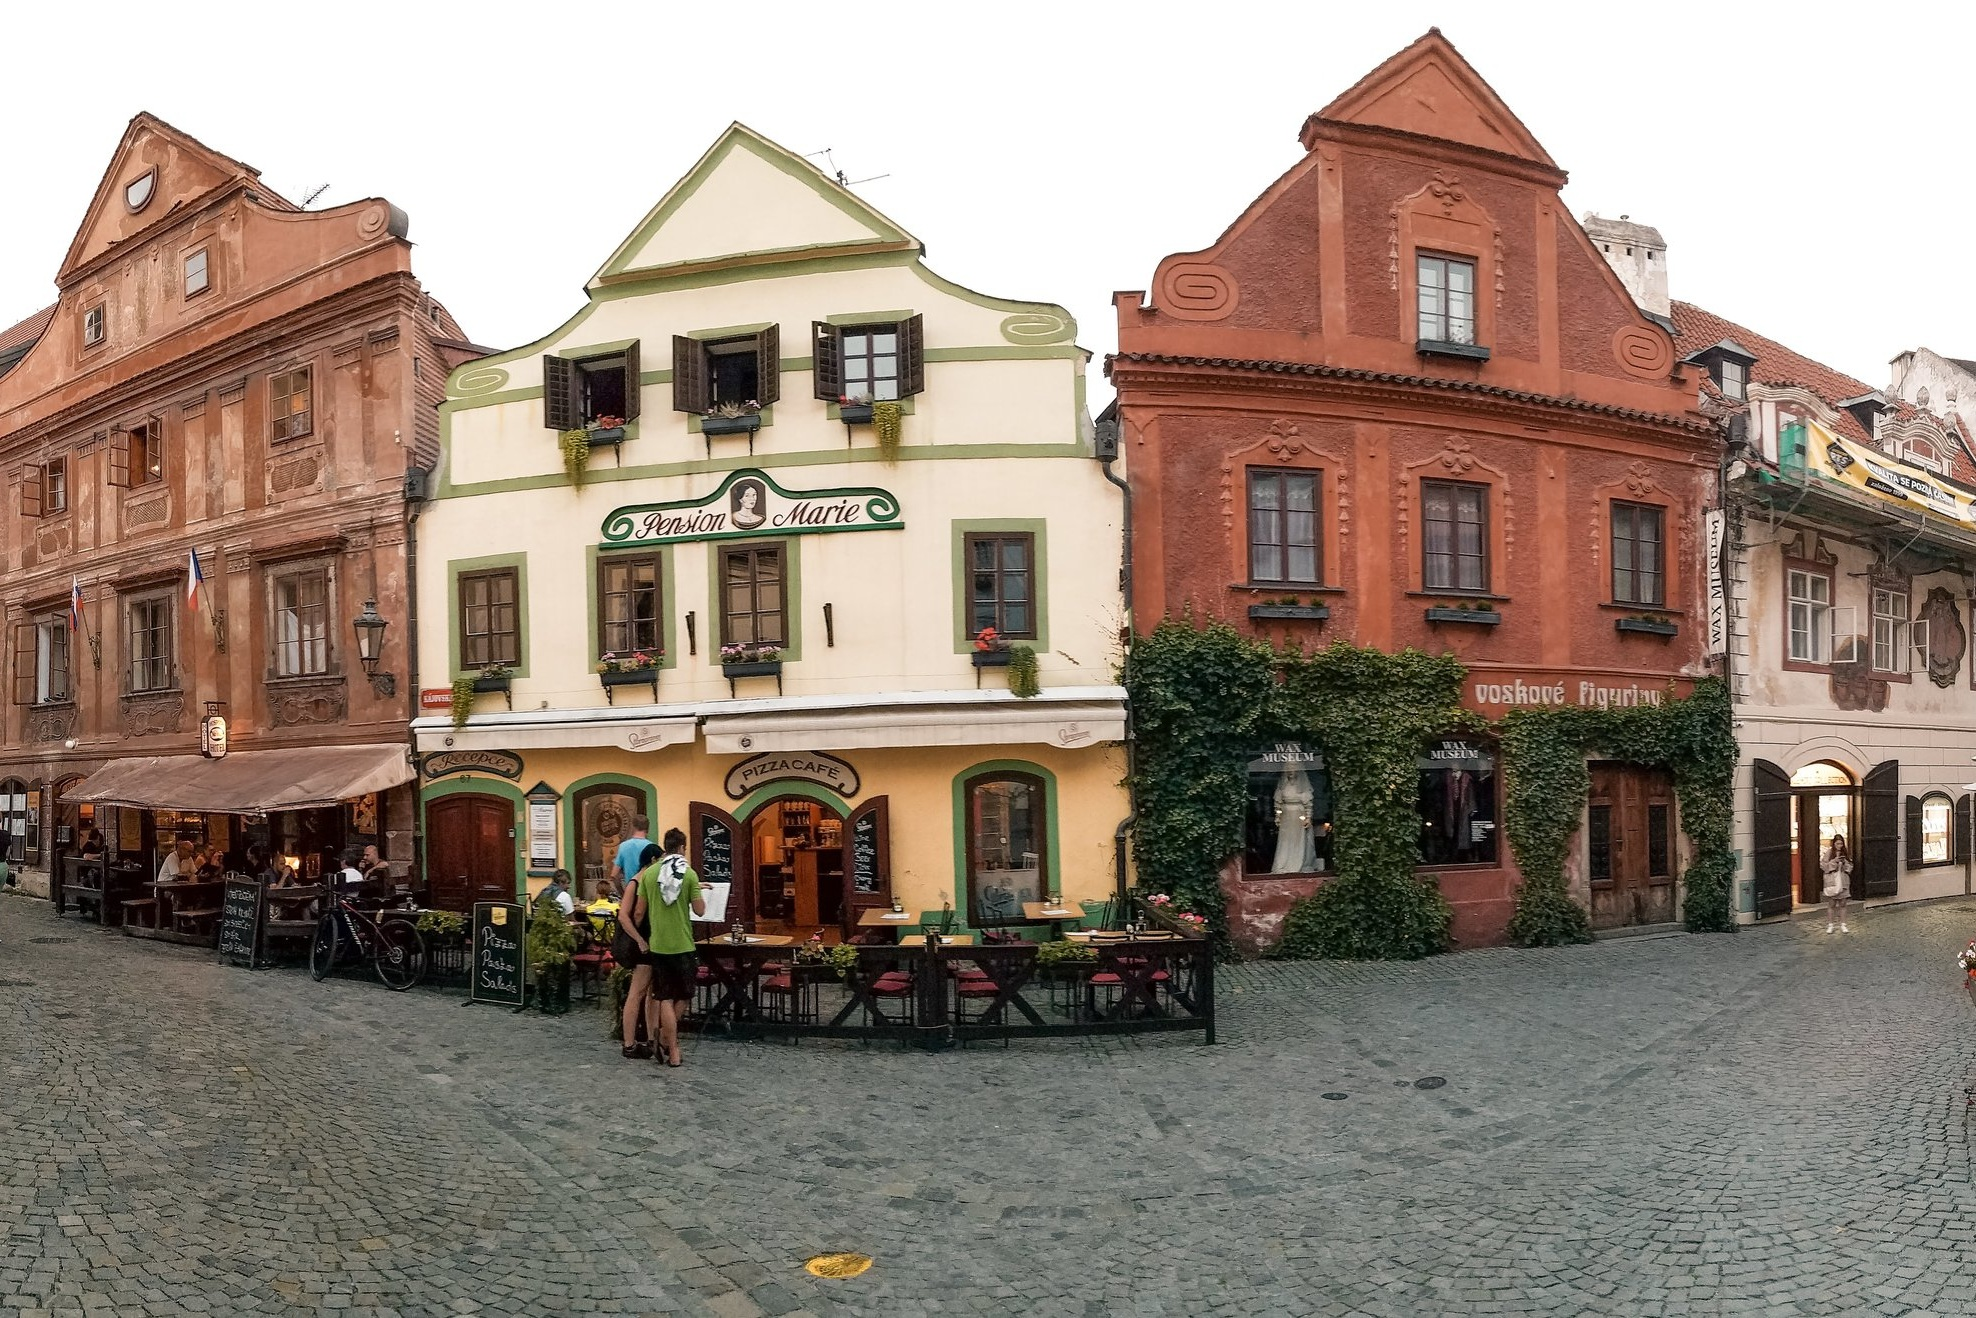 The historic buildings in downtown Cesky Krumlov come in all many different colors and designs, with elements of Baroque and Renaissance styles.